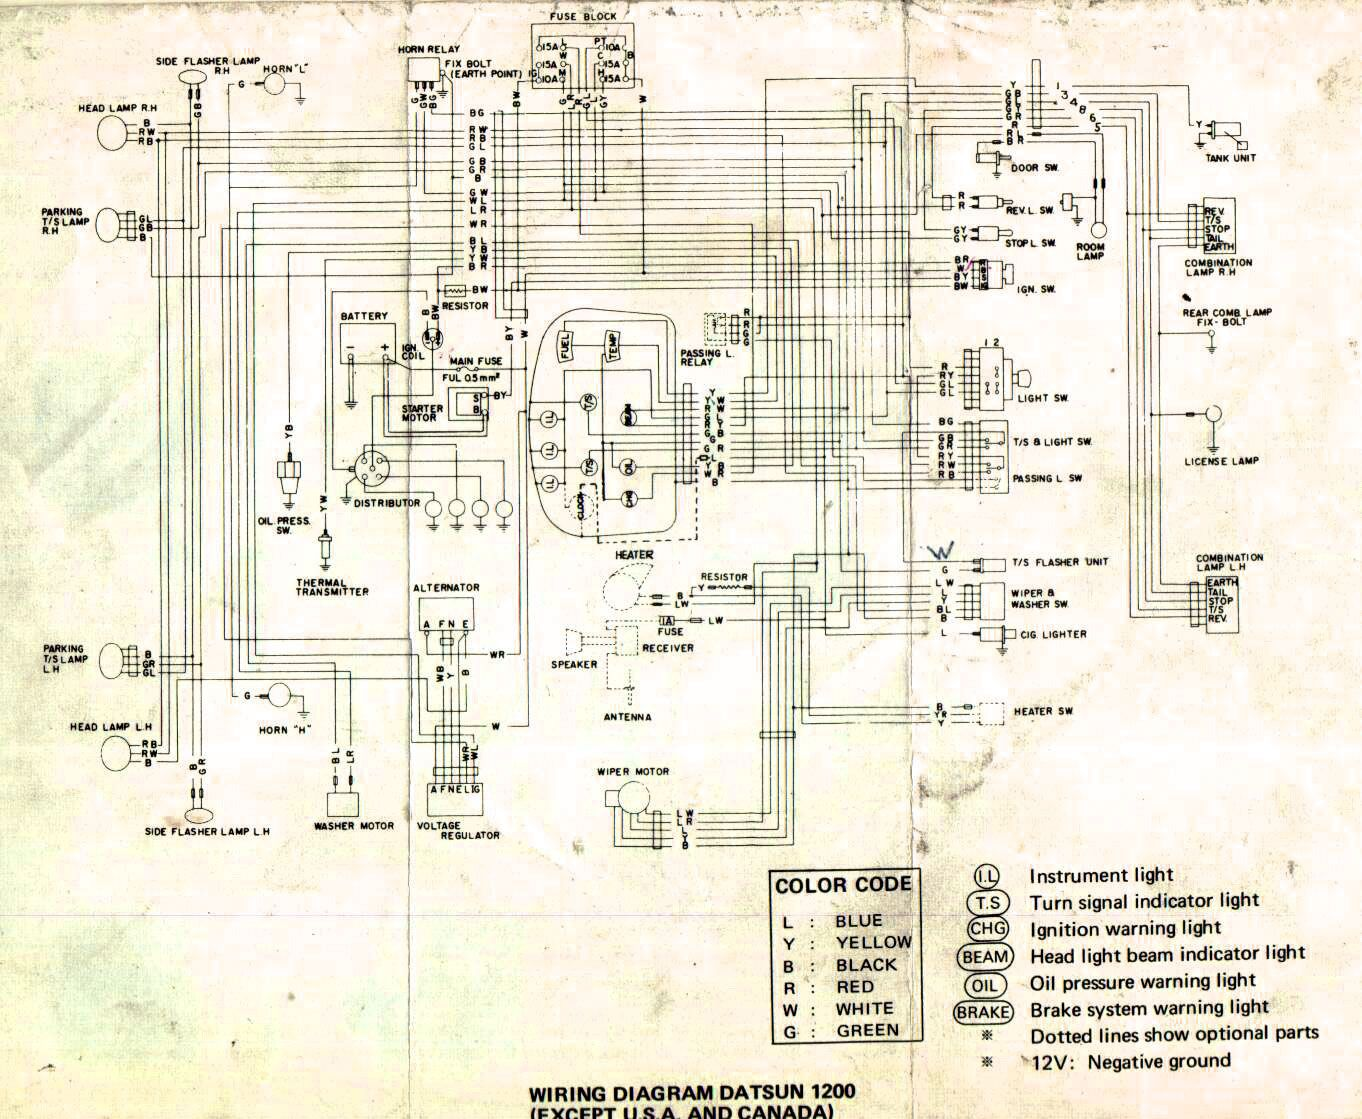 1972 Nissan Skyline Wiring Diagram Opinions About Hamer Centaura Guitar Harness For 1400 Bakkie 8 Pinterest Rh Com 1971